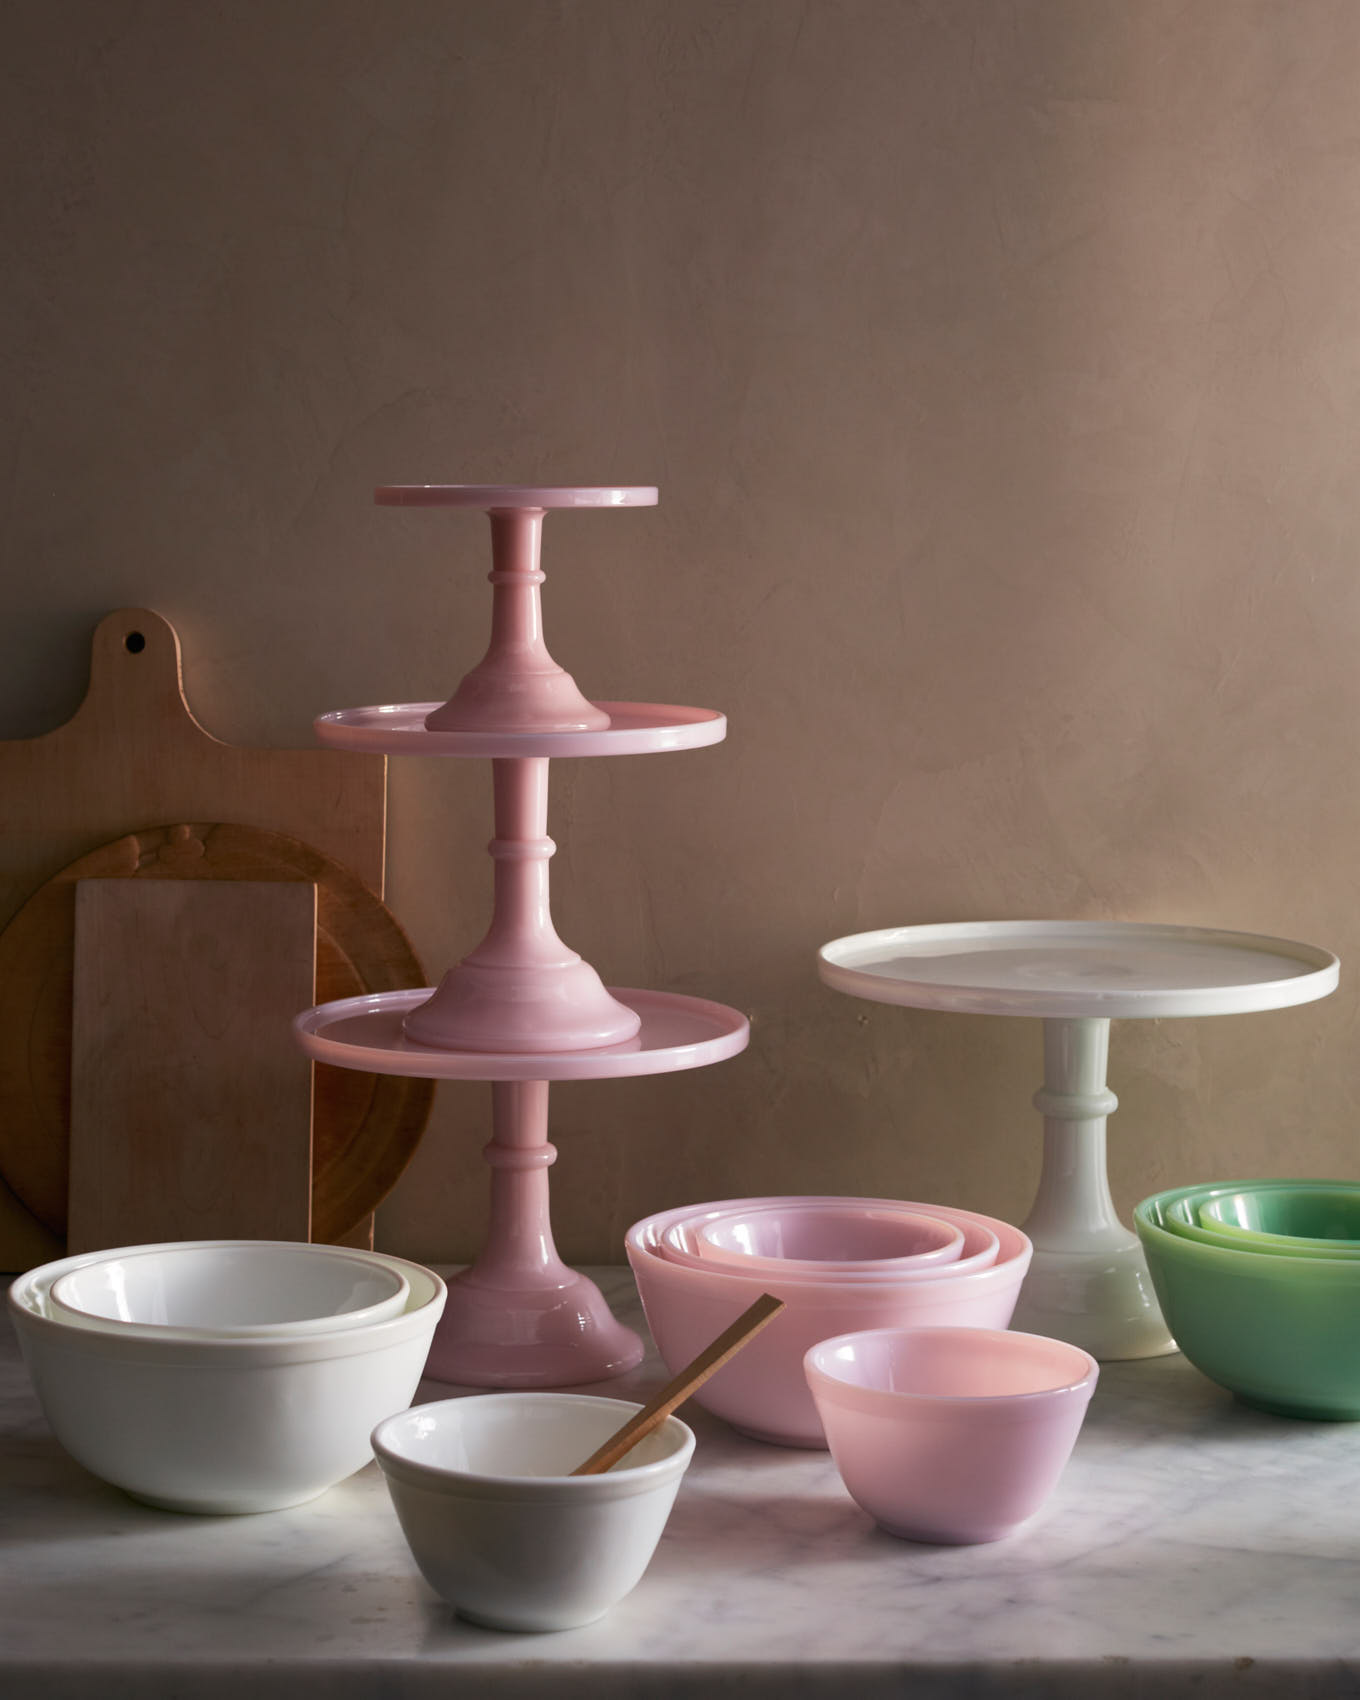 D110856-CakeStands-0027-w